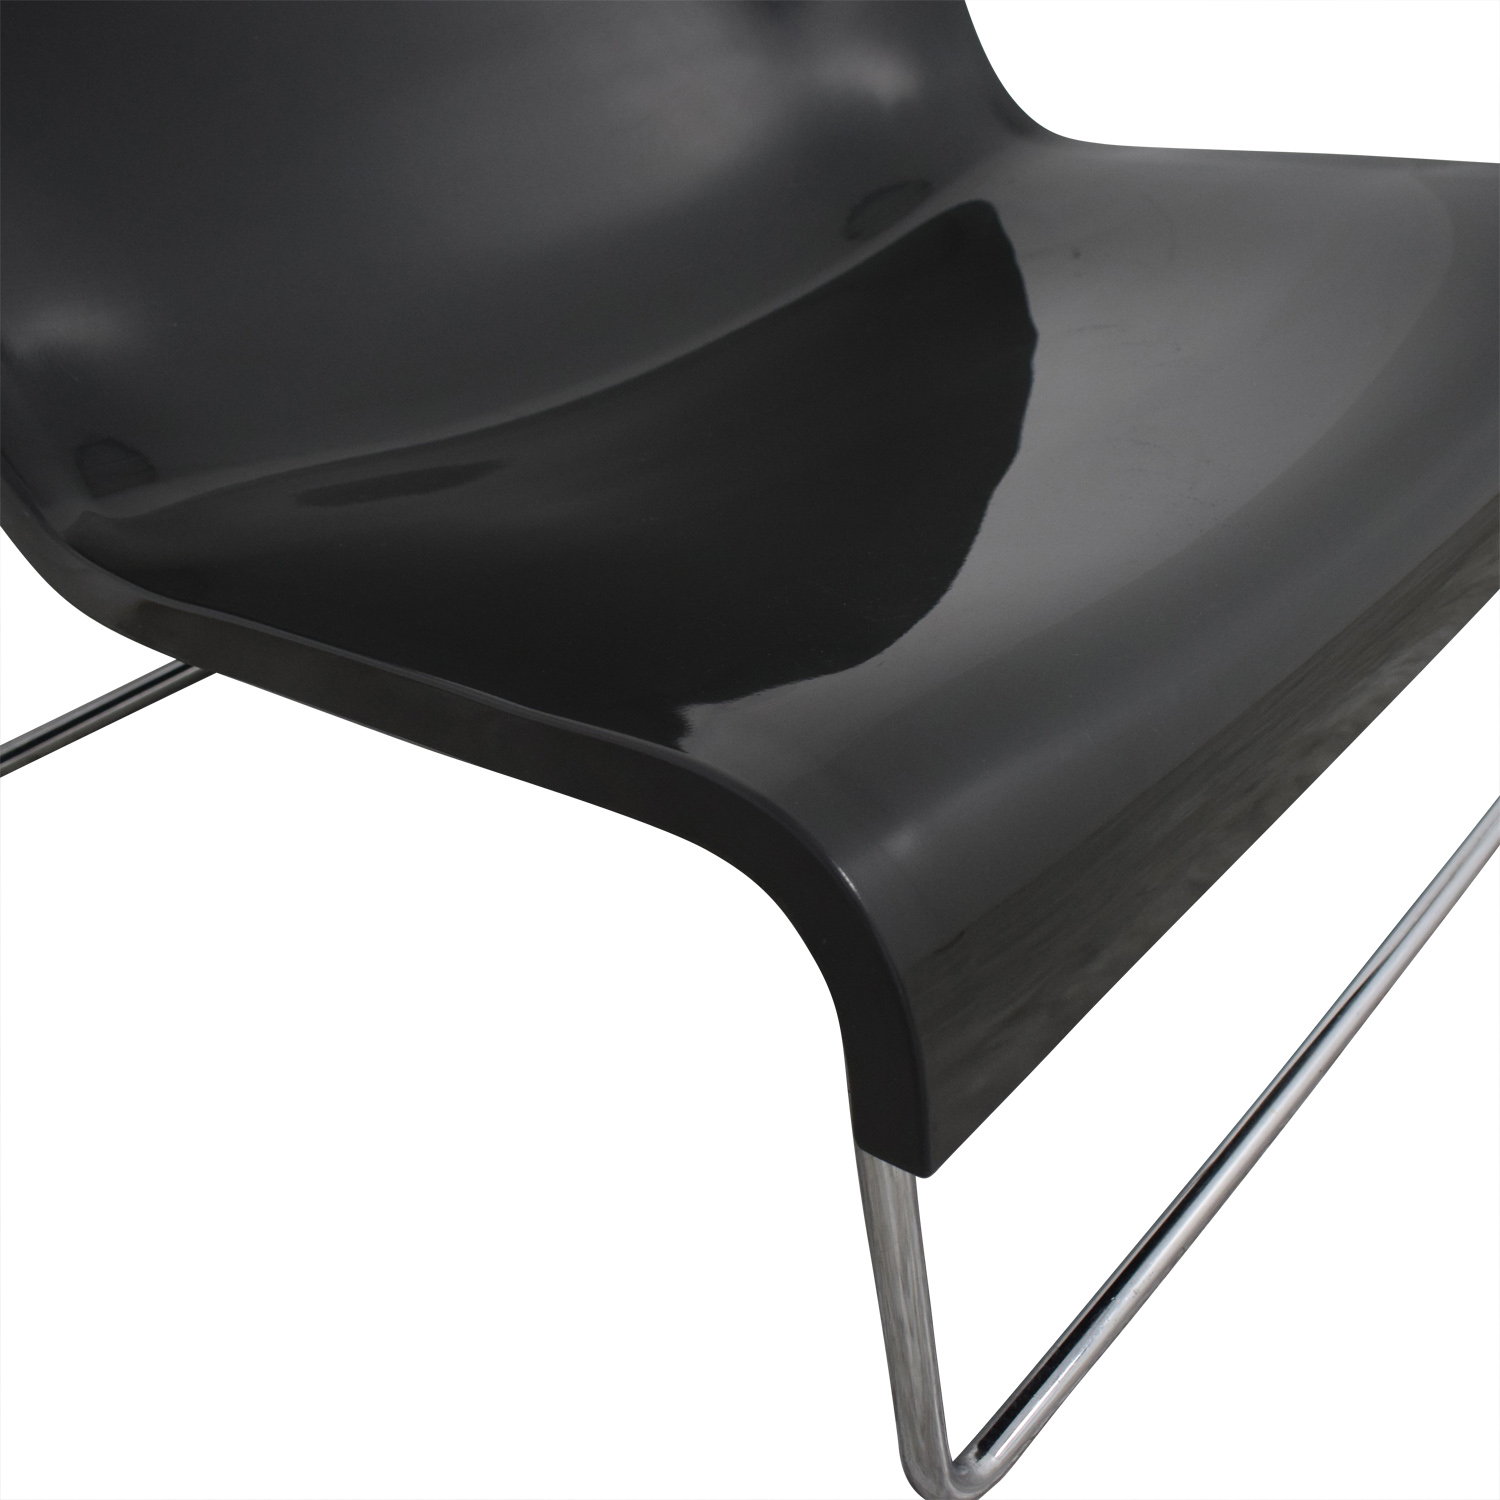 Kartell Kartell Form Chair by Piero Lissoni Chairs